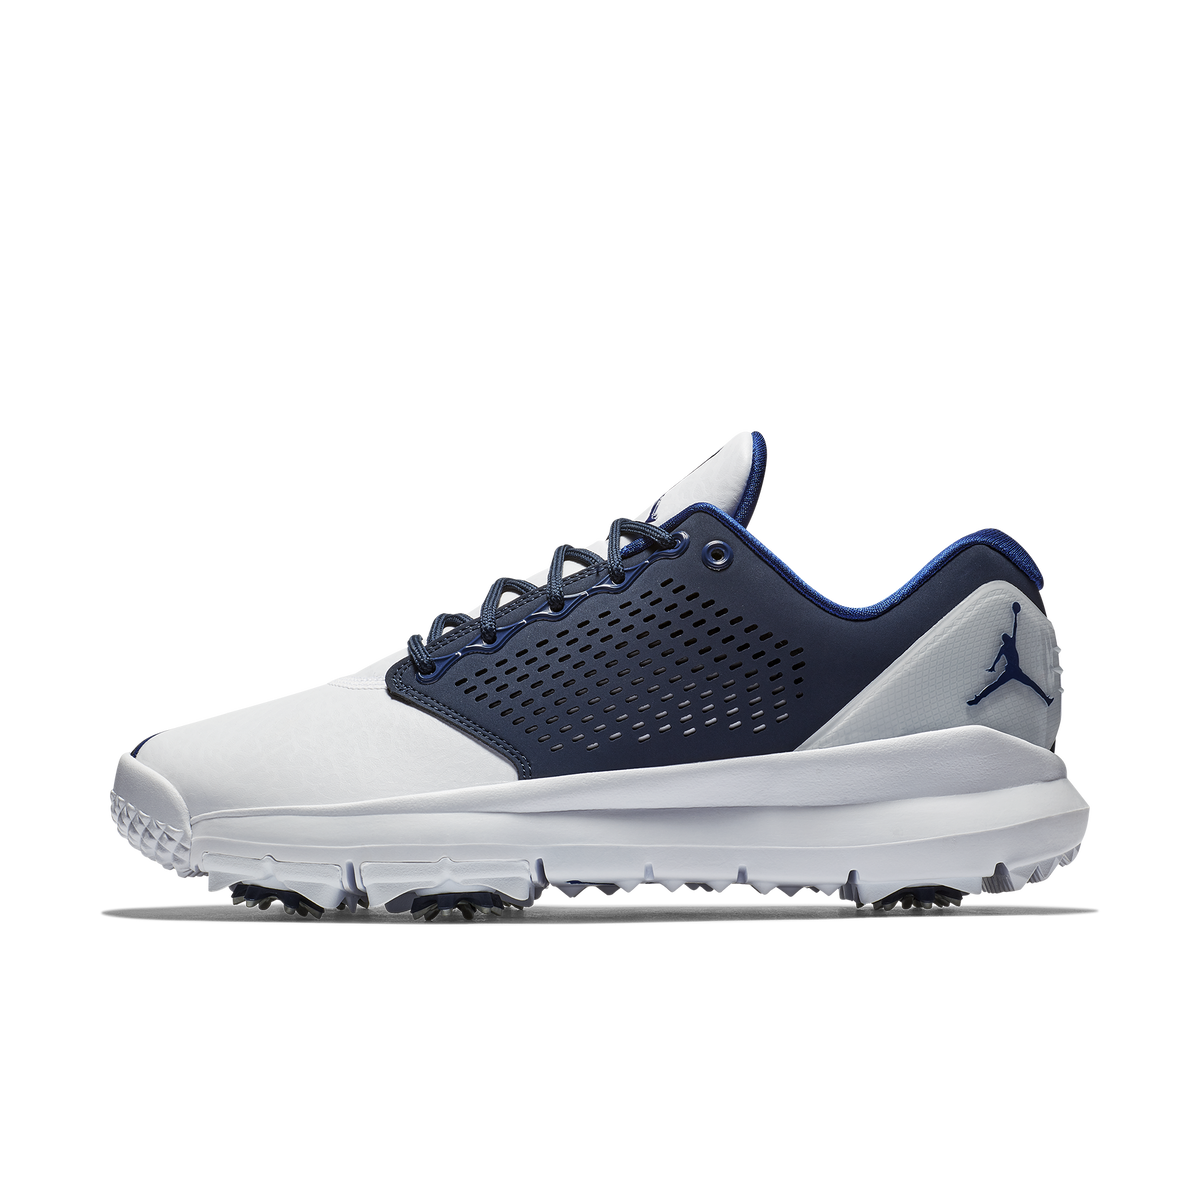 5f11a90638e8 Nike Jordan Trainer ST G Men's Golf Shoe - White/Navy Zoom Image